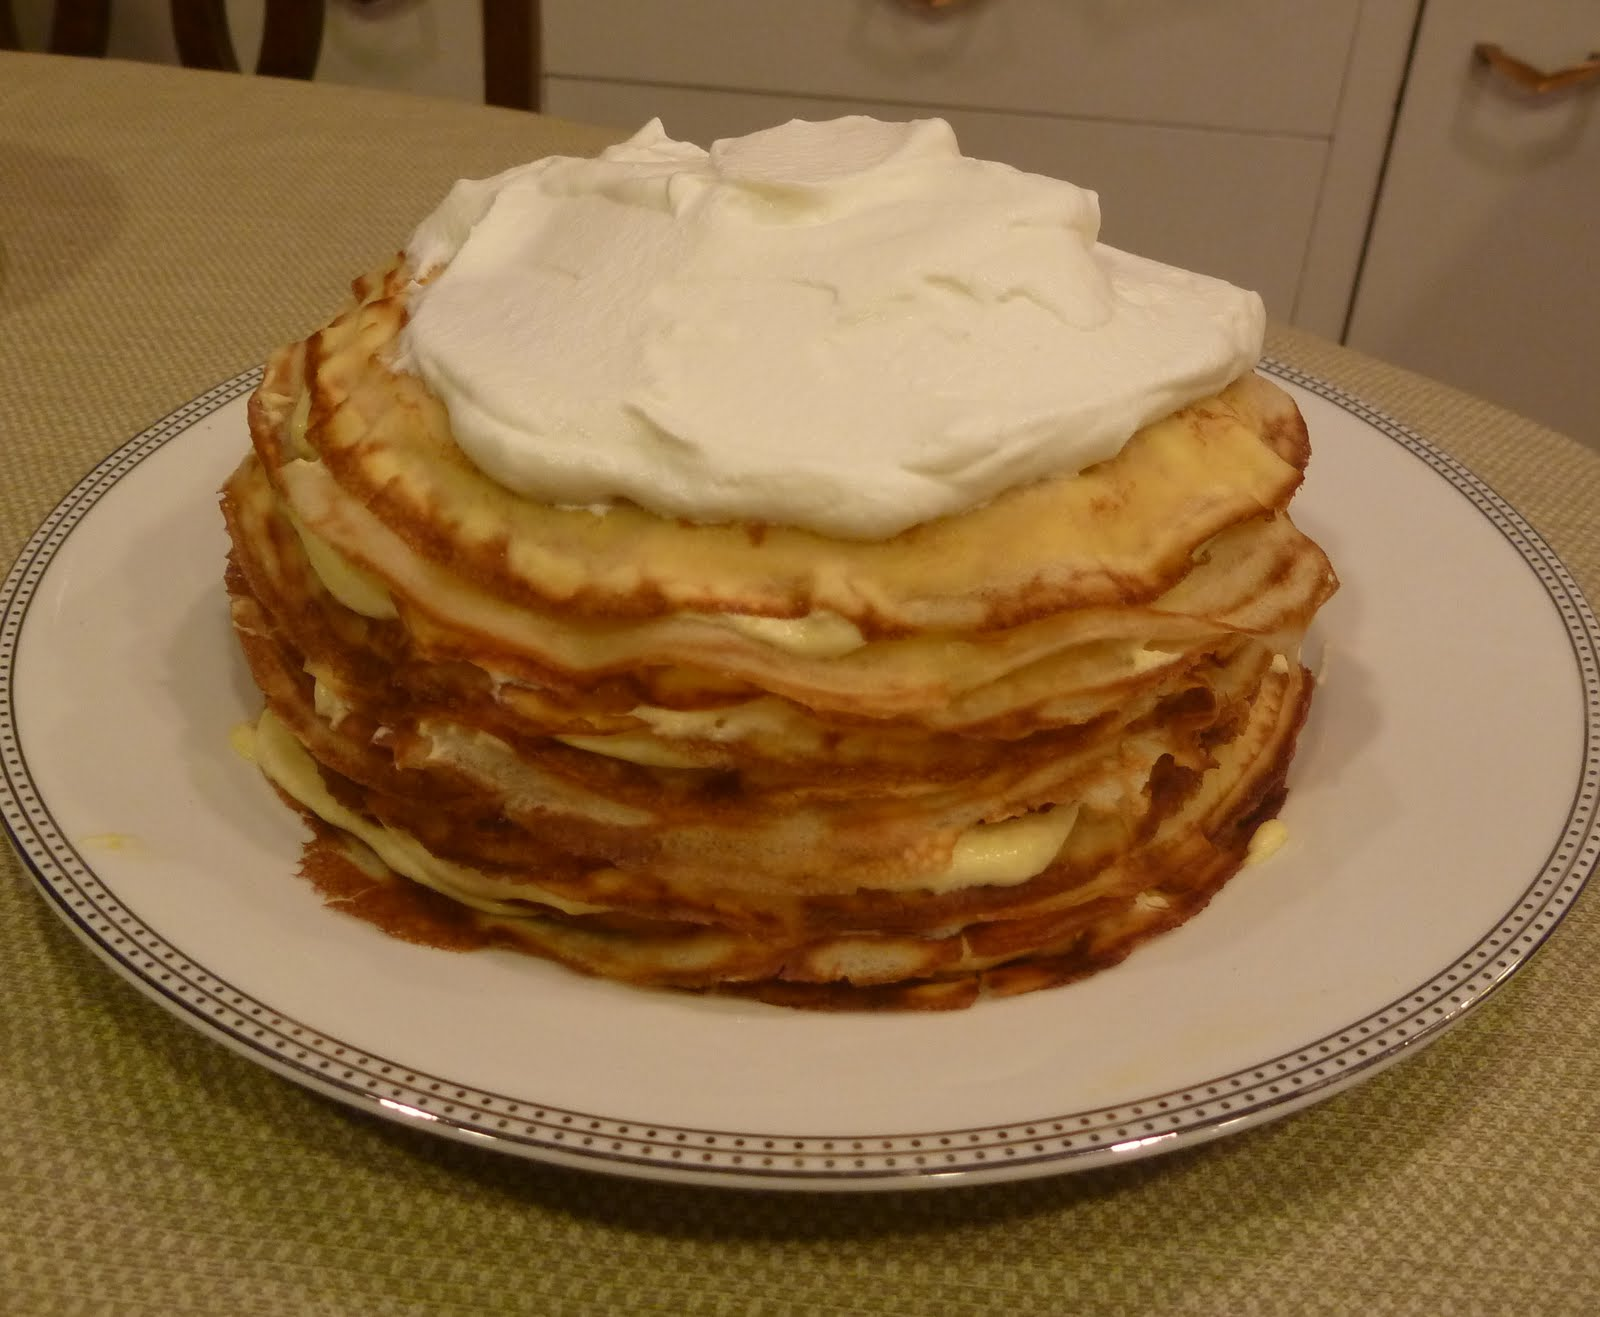 Mandy's Baking Adventures: Meyer Lemon Crepe Cake